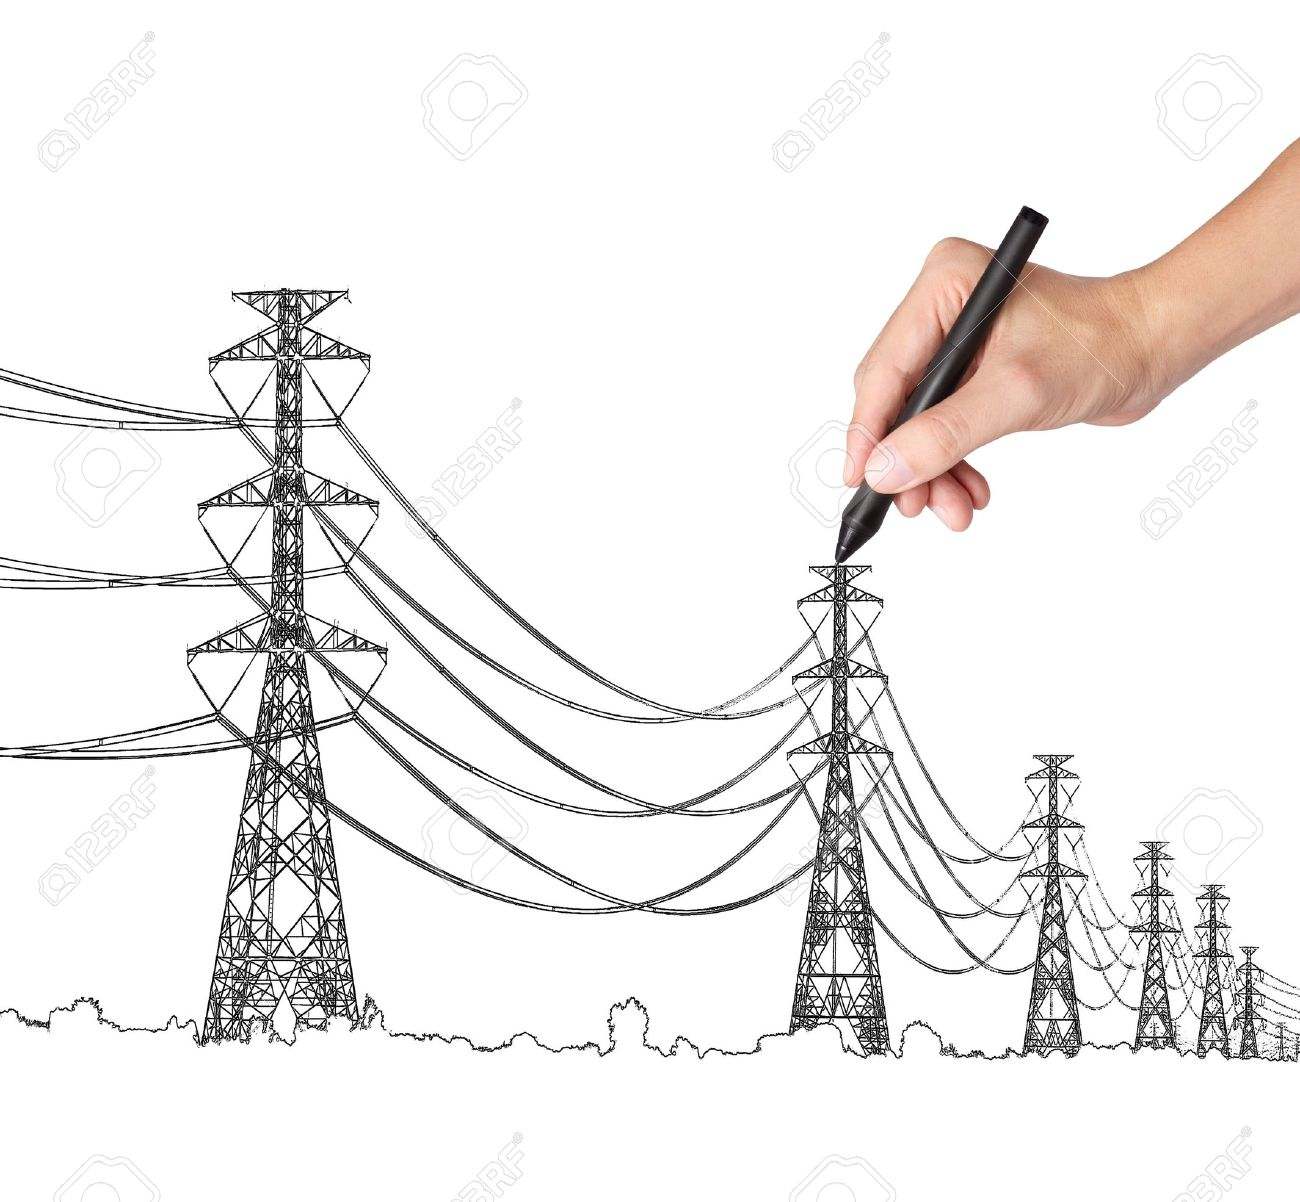 Business Hand Drawing Industrial Electric Pylon And Wire Stock Photo